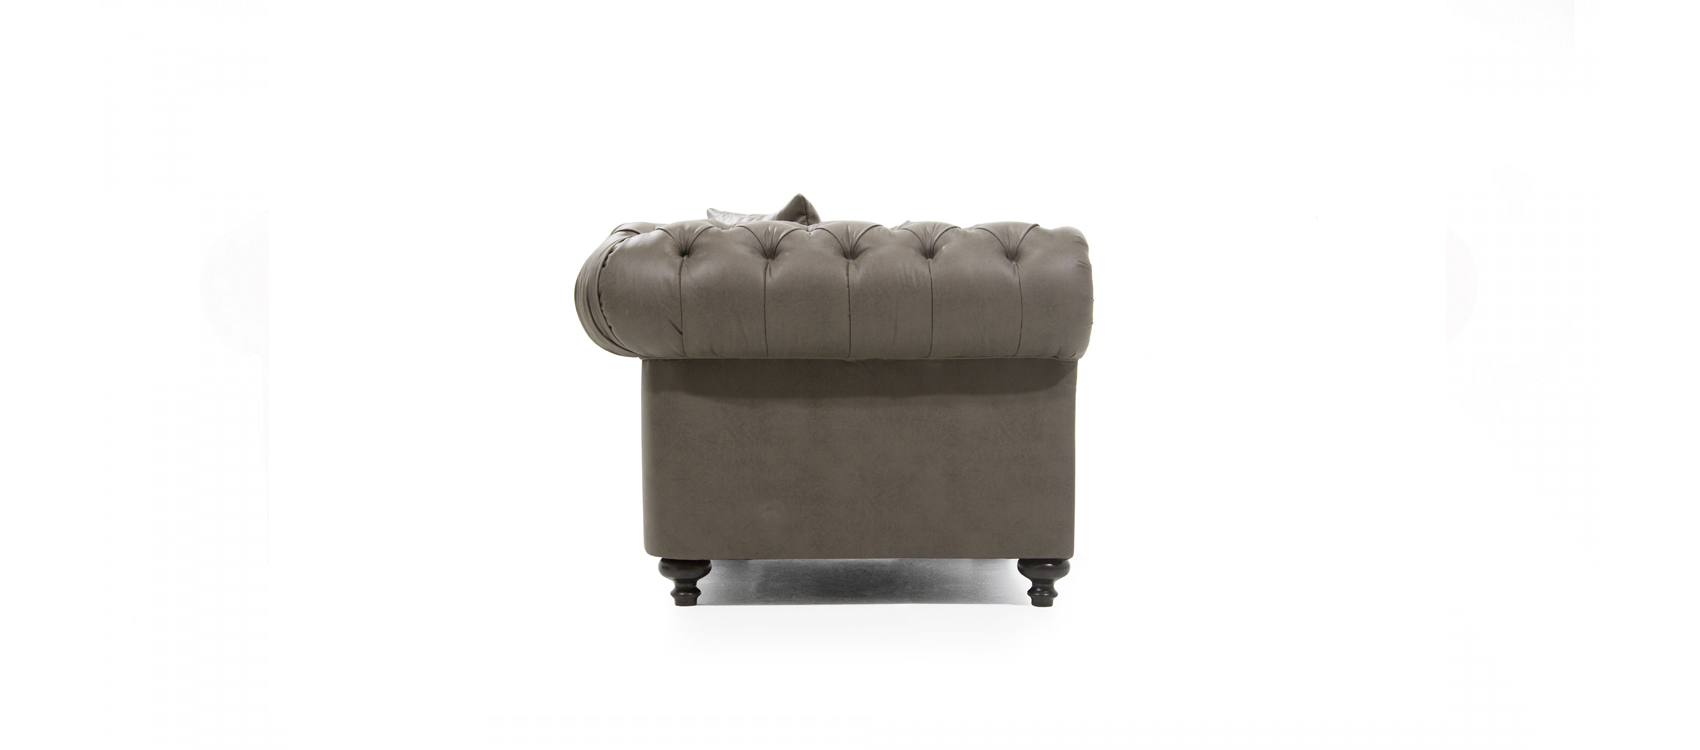 Sofa CHESTER 2 SEATER фото 6